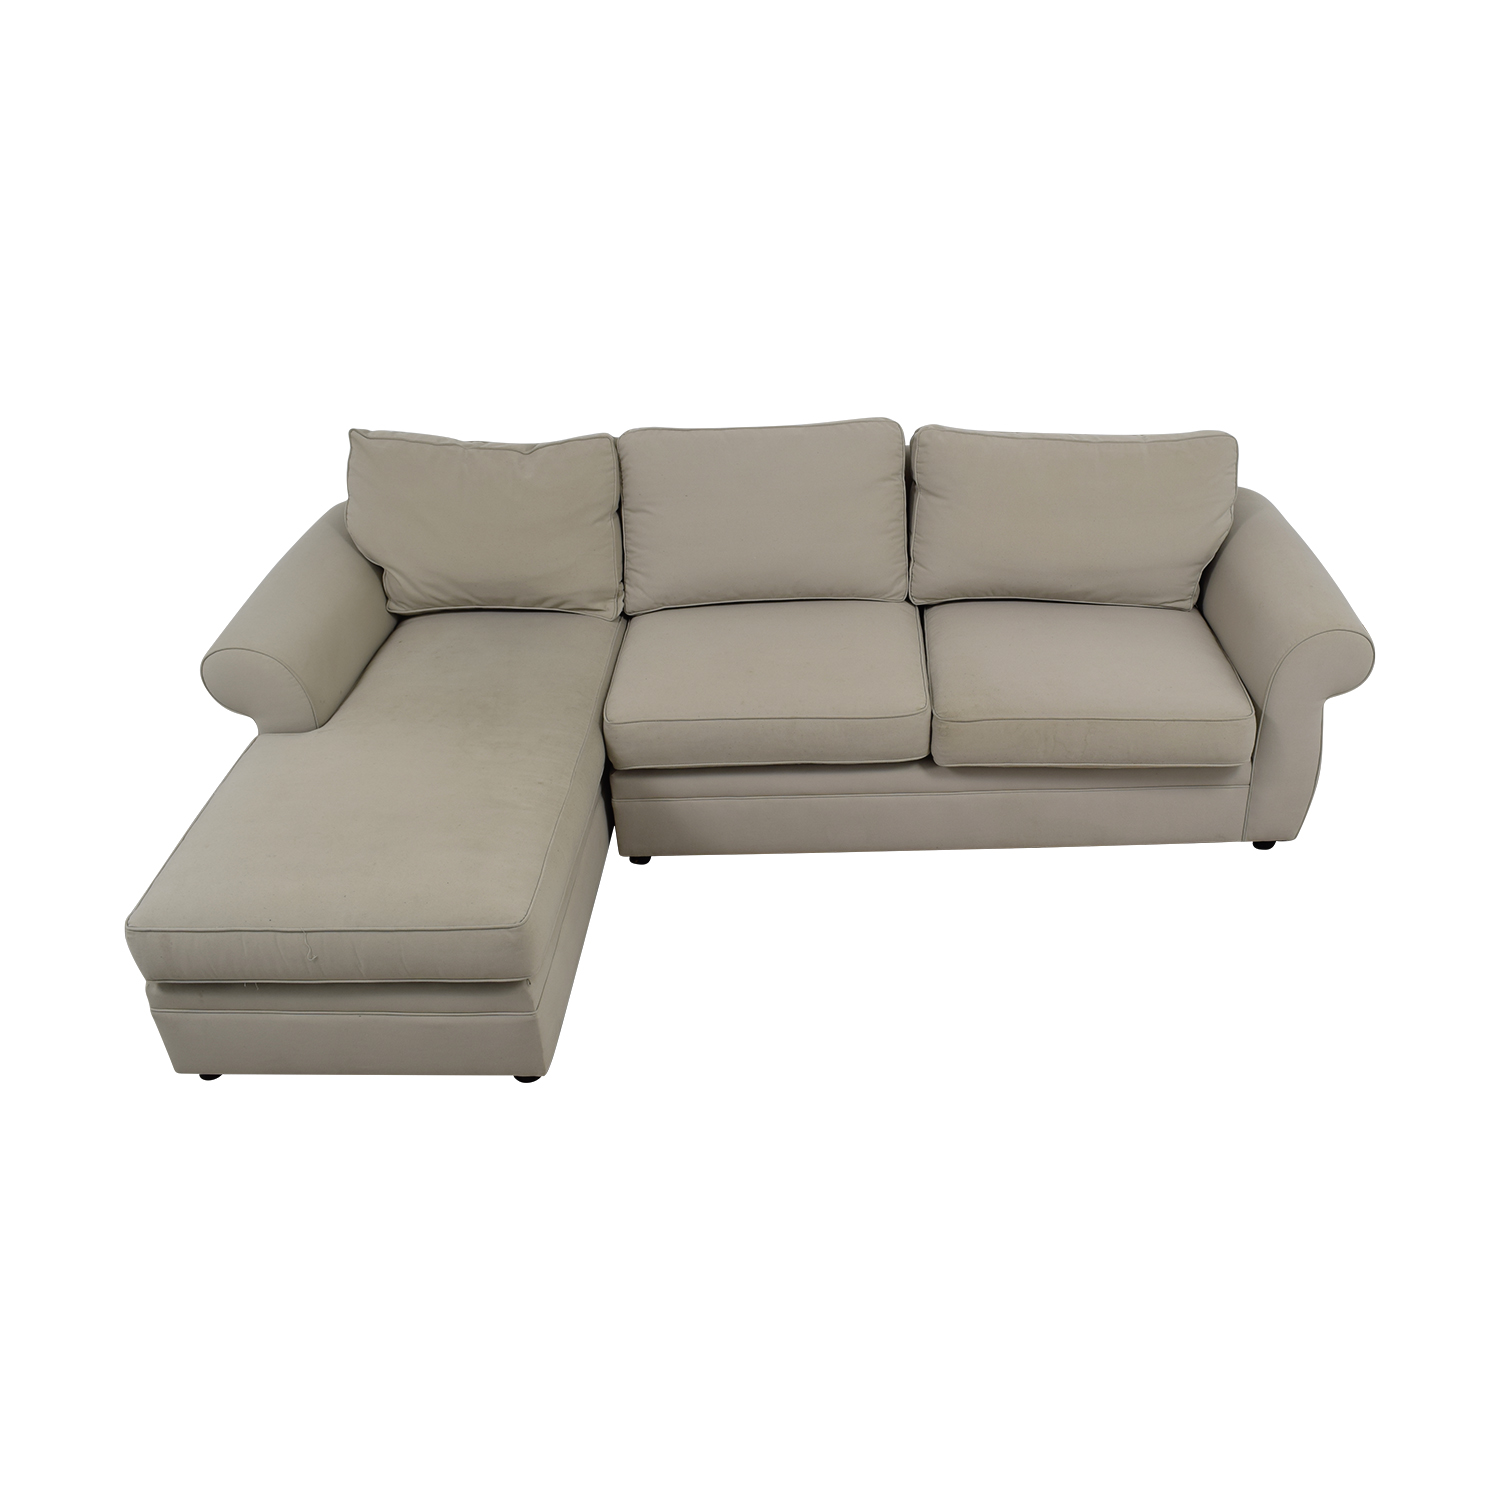 Pottery Barn Townsend Cream Upholstered Chaise Sectional / Sectionals